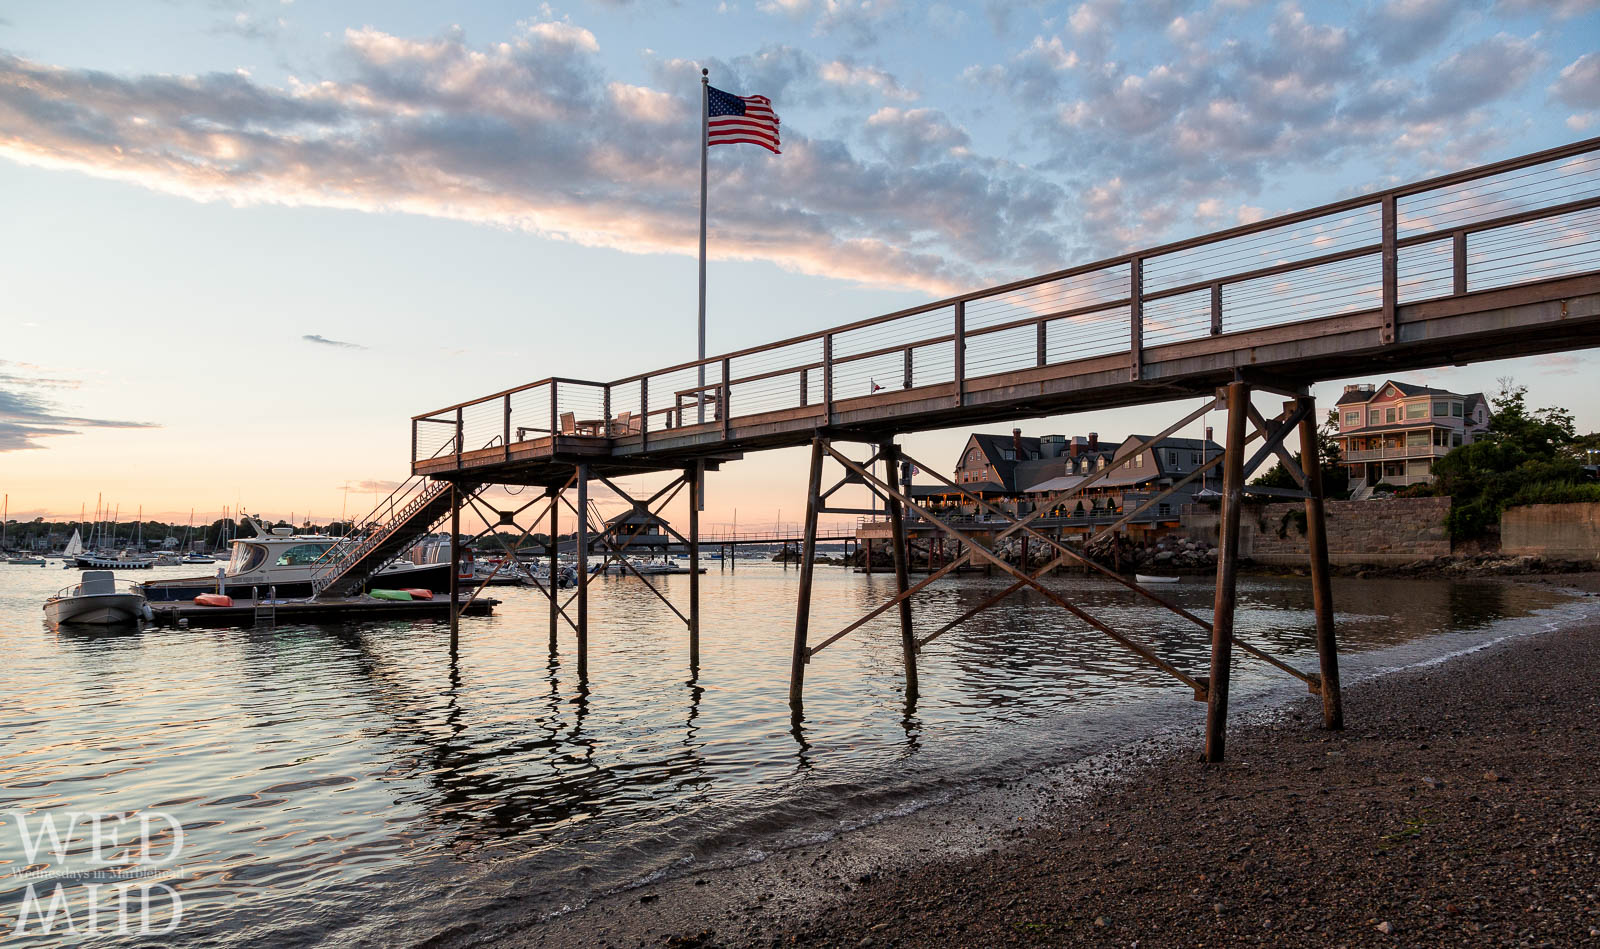 Old Glory flies high from a private pier along Marblehead Neck with the Corinthian Yacht Club seen in the distance